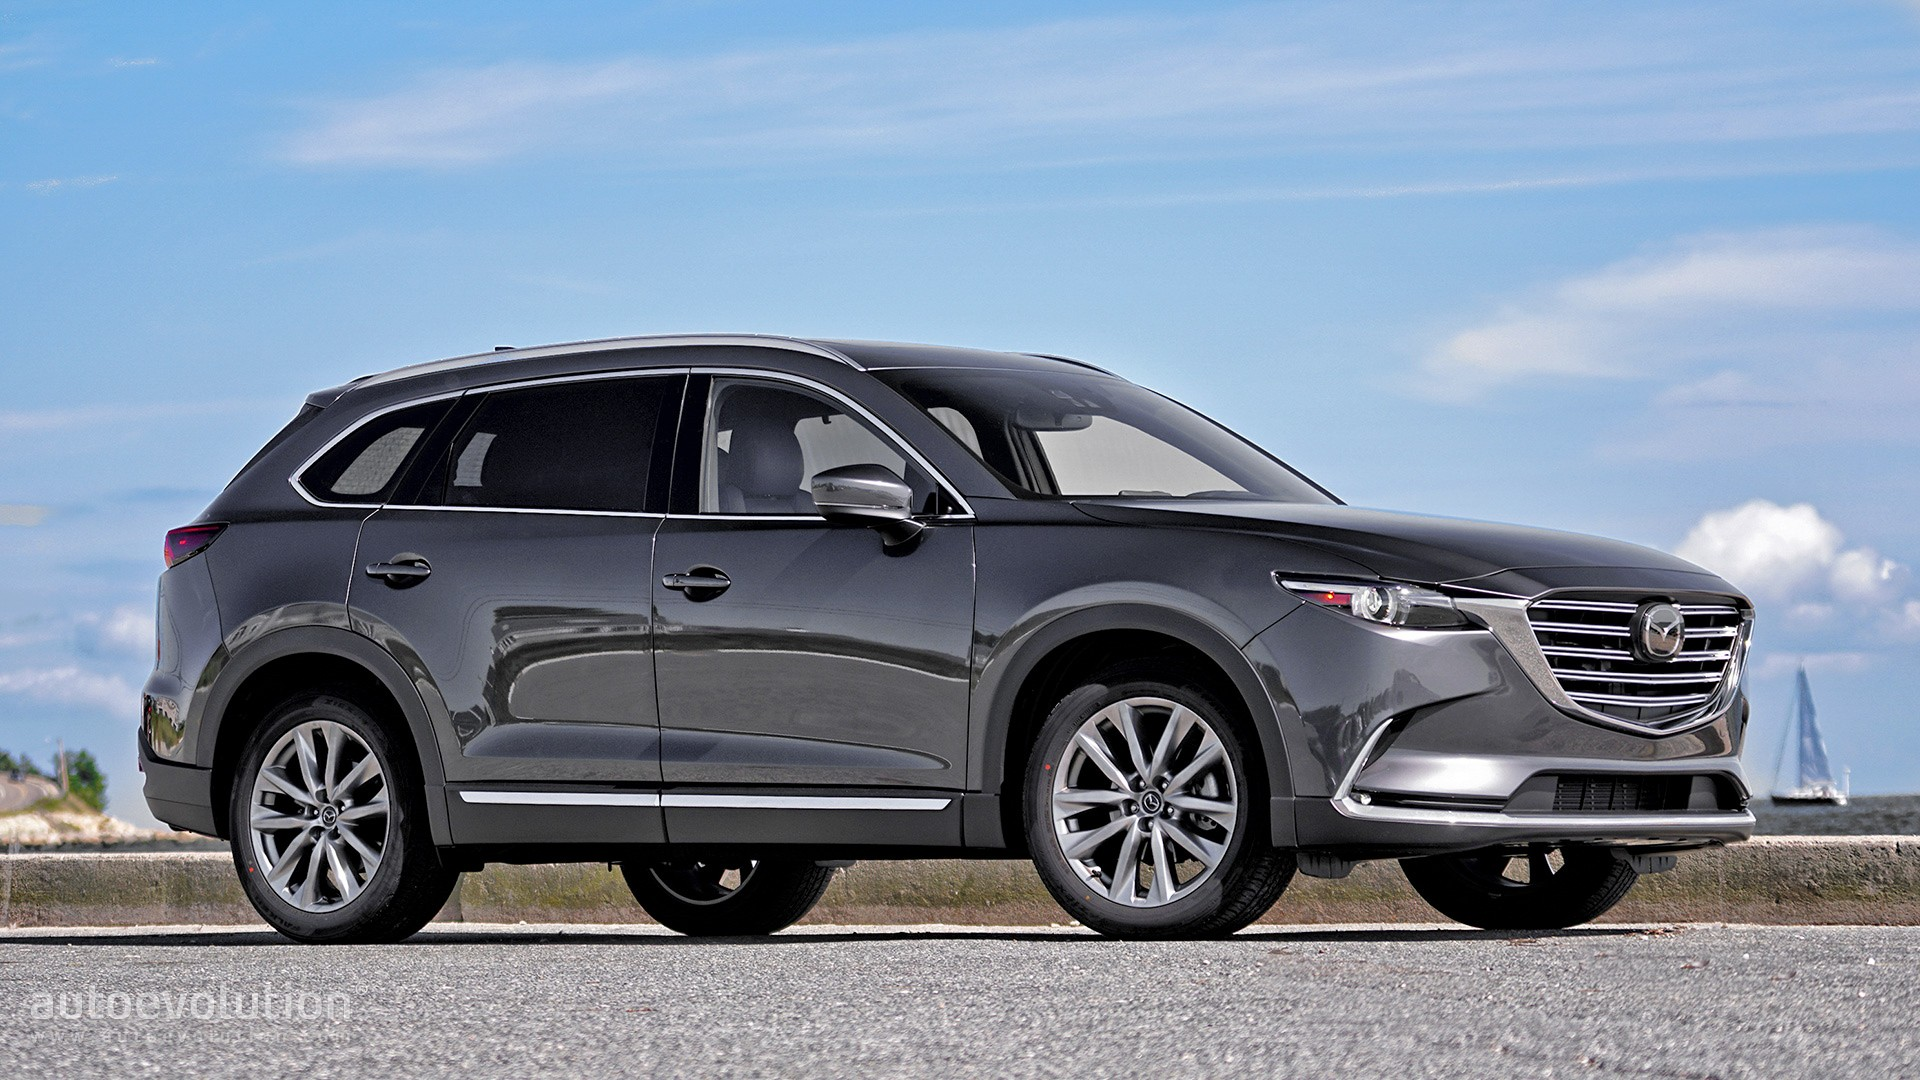 7 Passenger Suv >> Driven: 2017 Mazda CX-9 Signature AWD - autoevolution